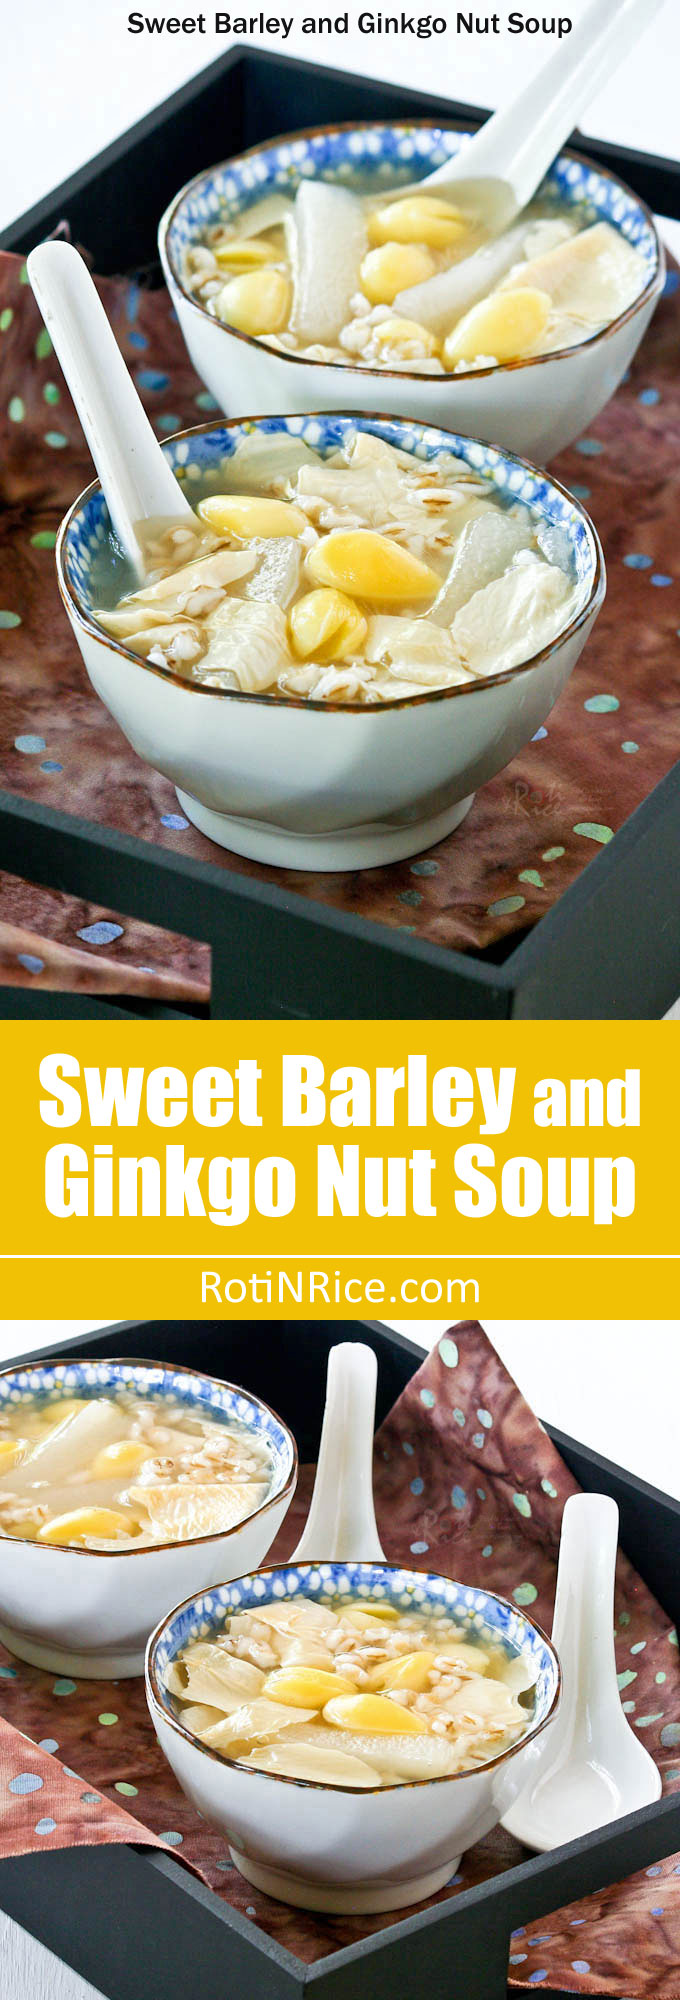 Sweet Barley and Ginkgo Nut Soup, a traditional Chinese dessert sweetened with candied winter melon. Other additions include beancurd sheets and quail eggs. | RotiNRice.com